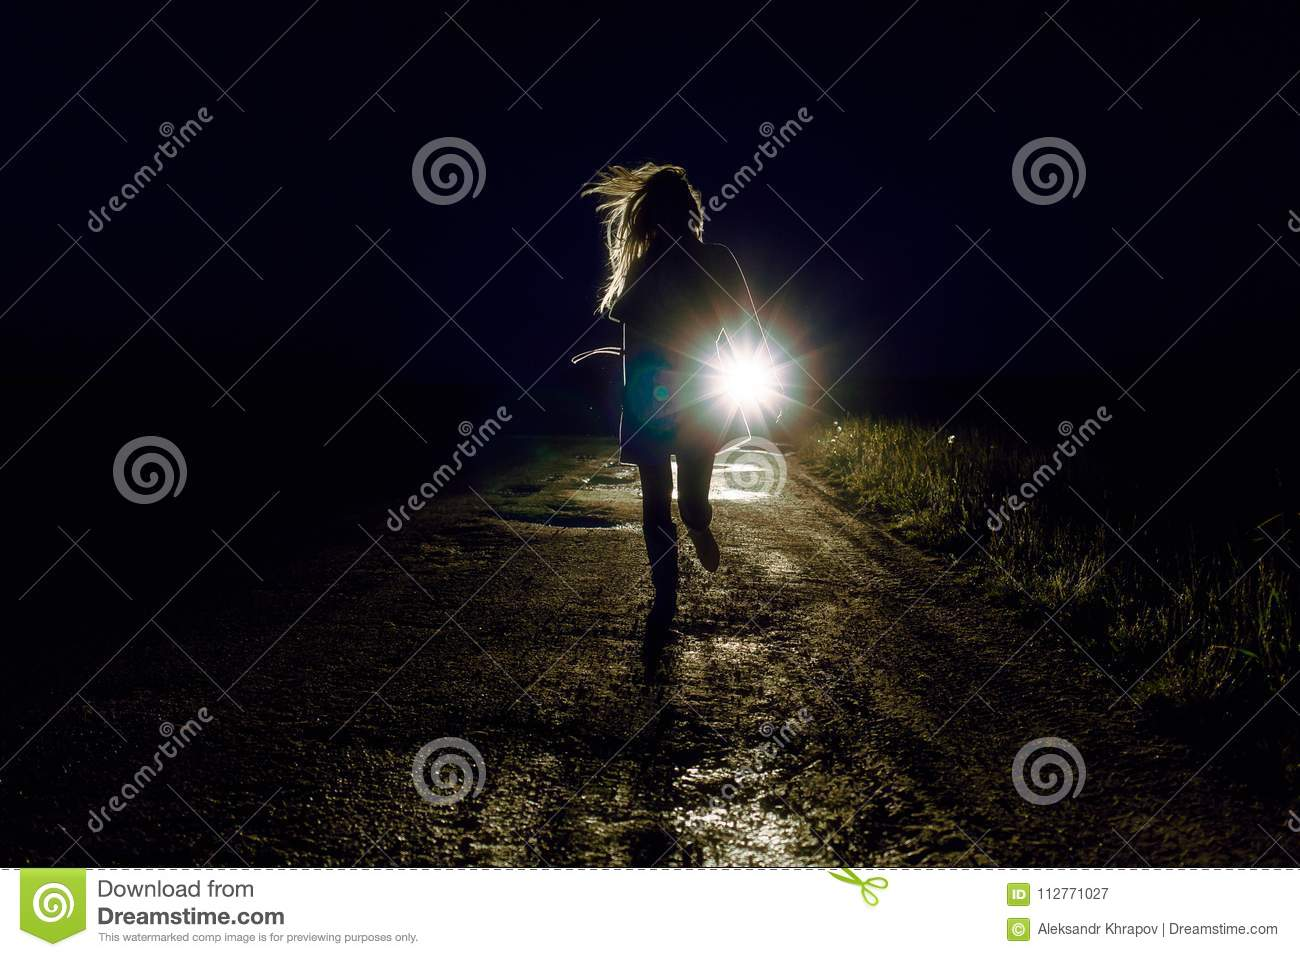 female silhouette on a night country road running away from pursuers by car in the light of headlights